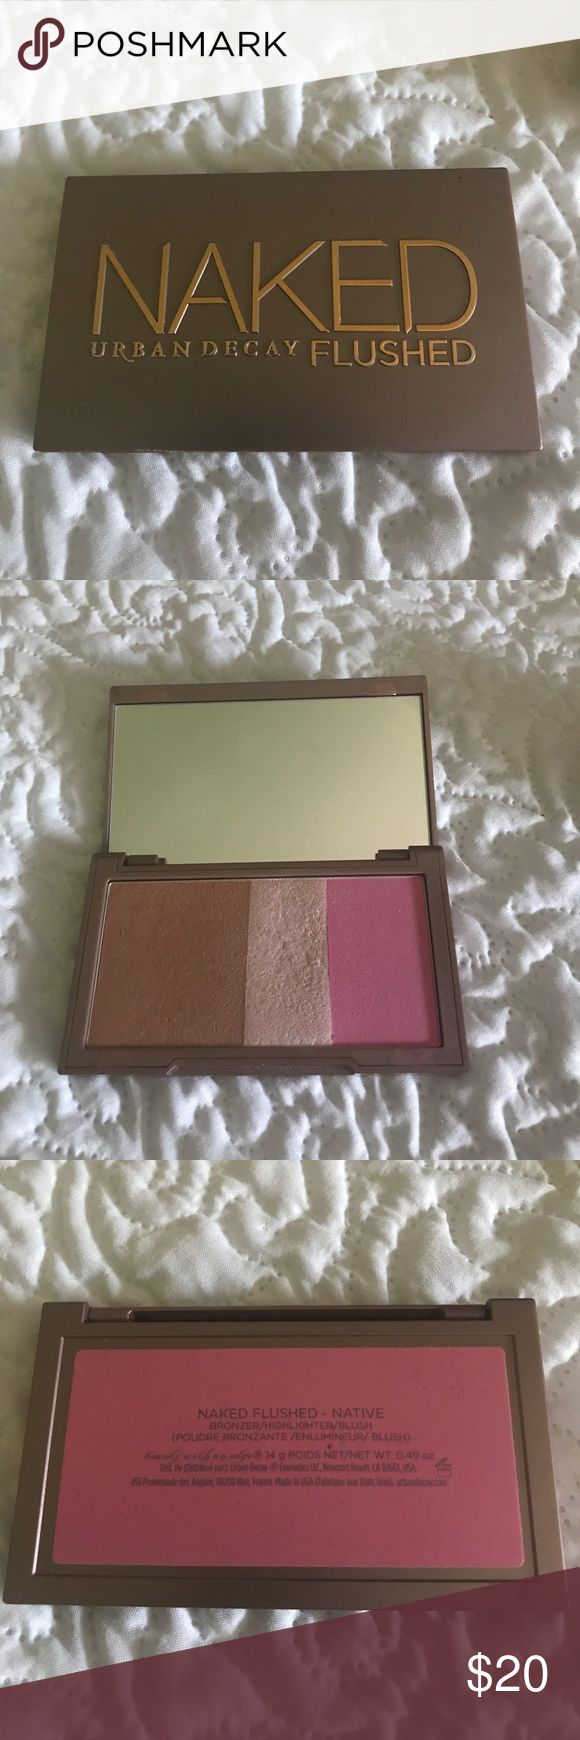 Urban Decay Naked Flushed Palette Used a handful of times and in great condition! Intact mirror, no box. In the shade Native. Better suited for medium skin tones. Urban Decay Makeup Blush